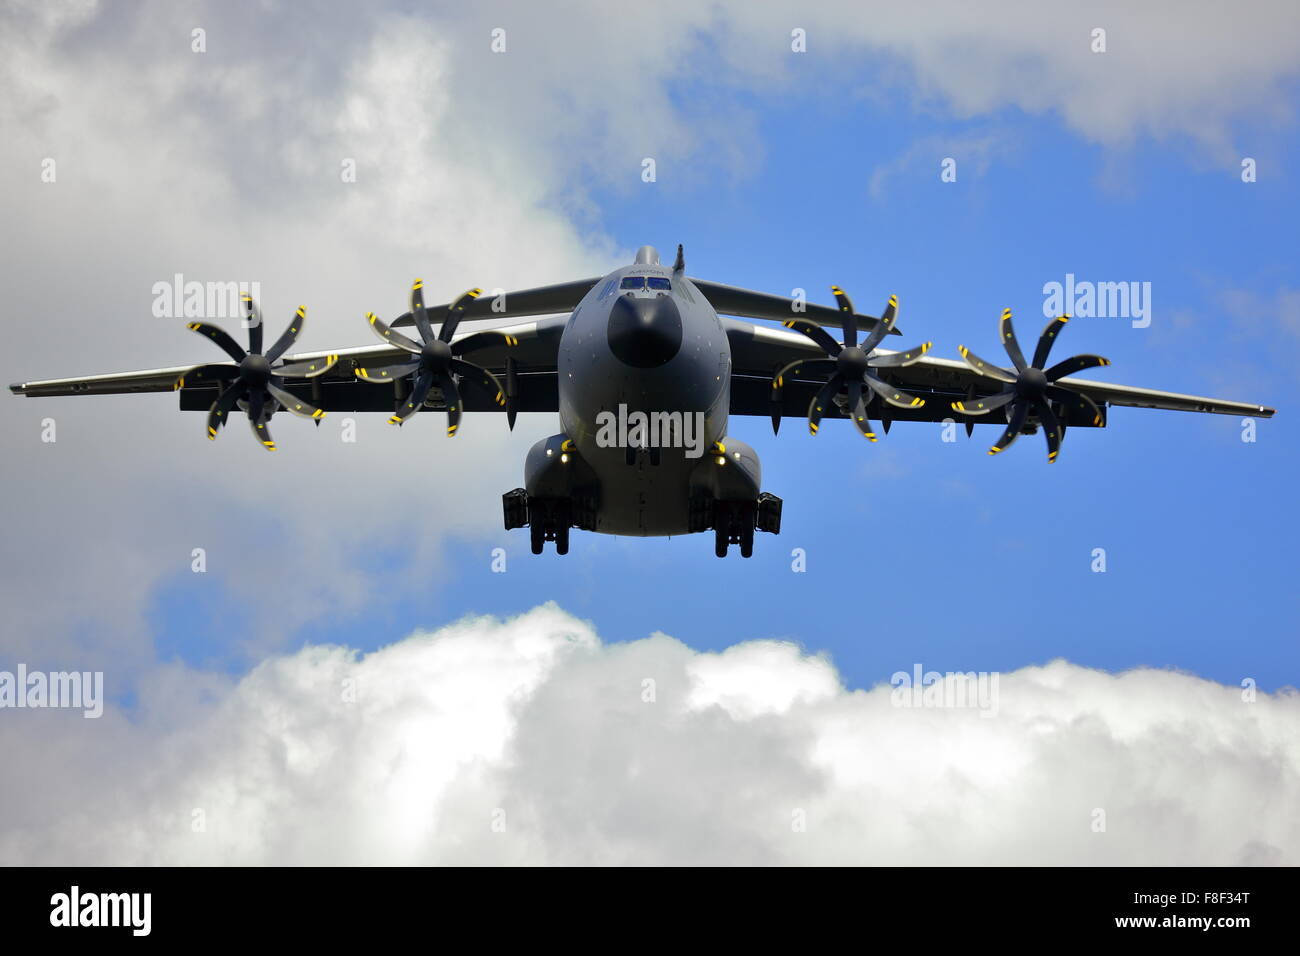 Airbus A400m approaching Farnborough Airport during the Air Show 2014 - Stock Image